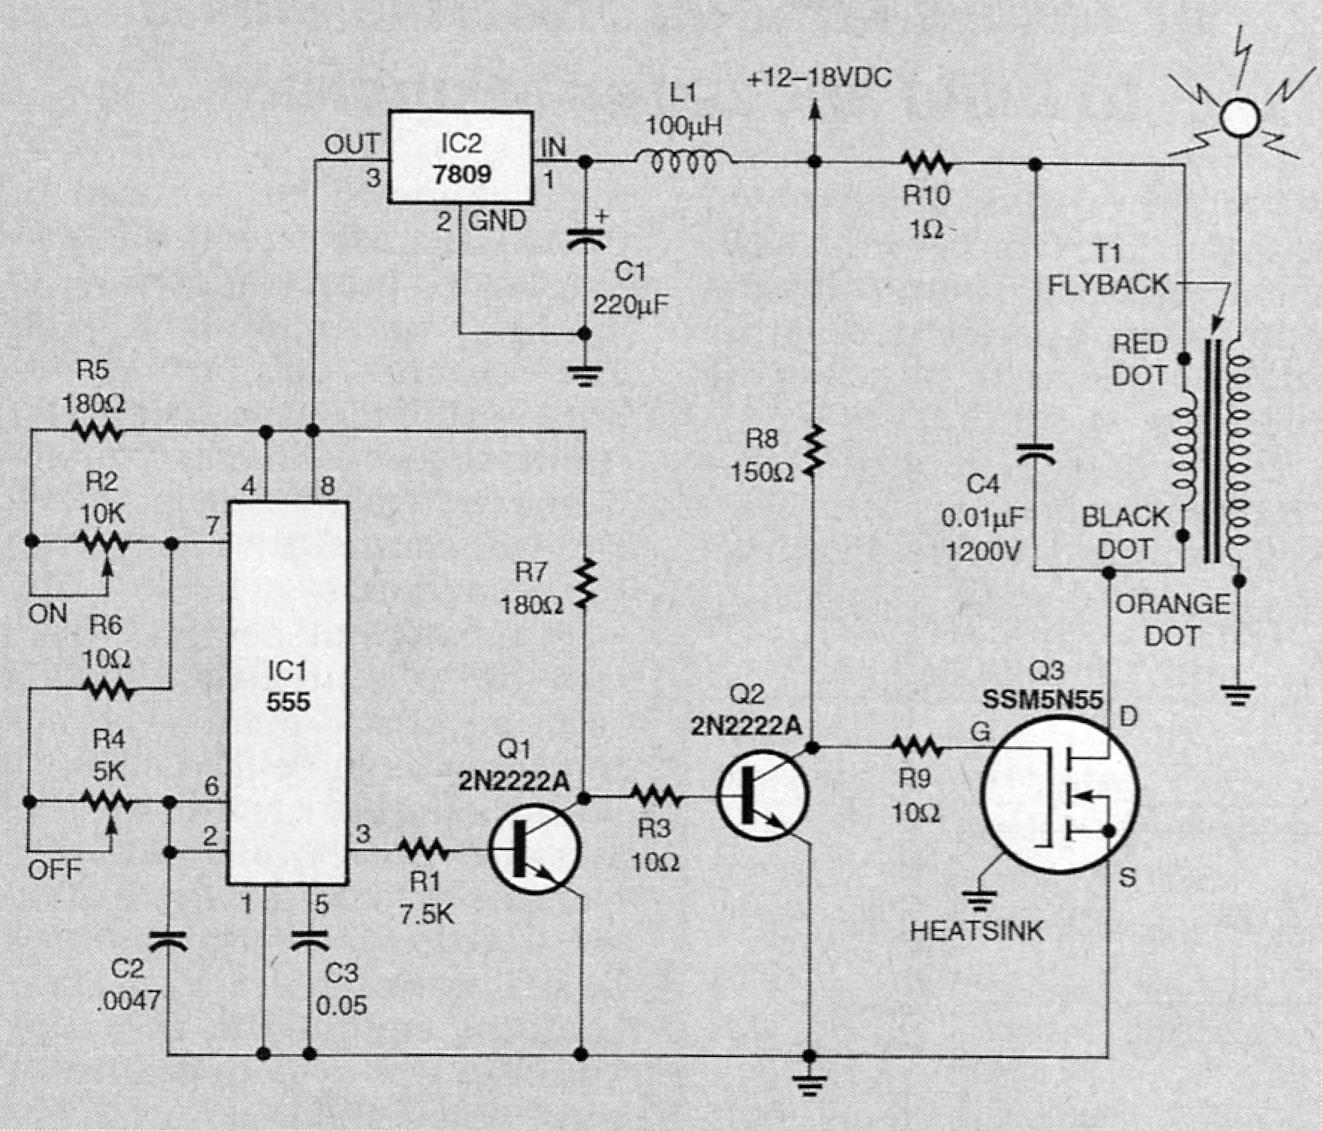 fig 1 the solidstate tesla circuit consists of a pulse generator